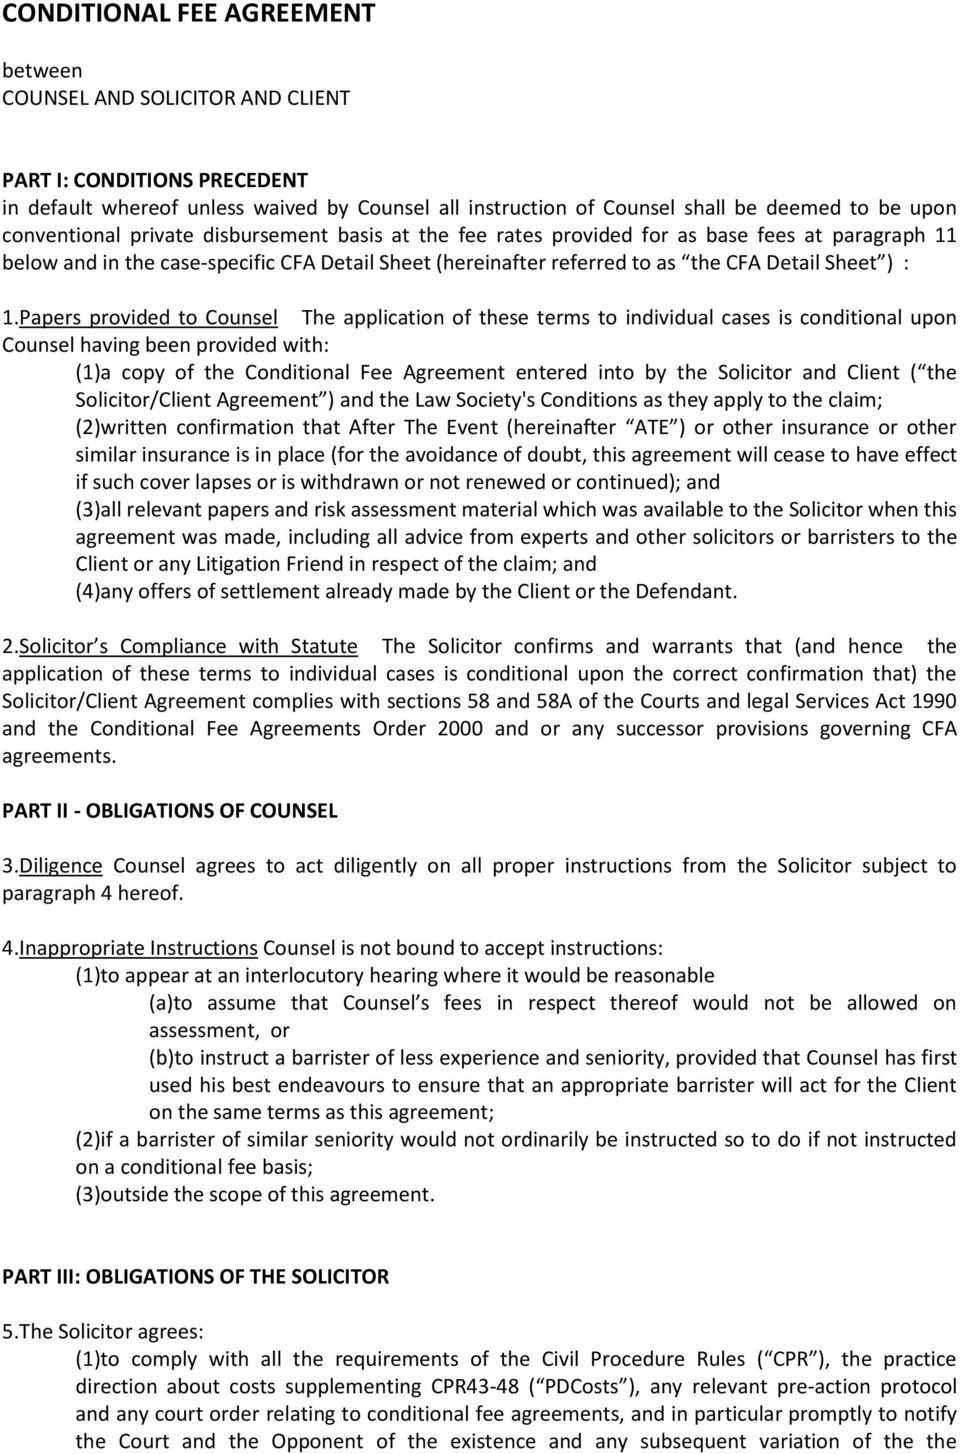 Conditional Fee Agreement Standard Terms Apil Piba    Form Inside Conditional Fee Agreement Template